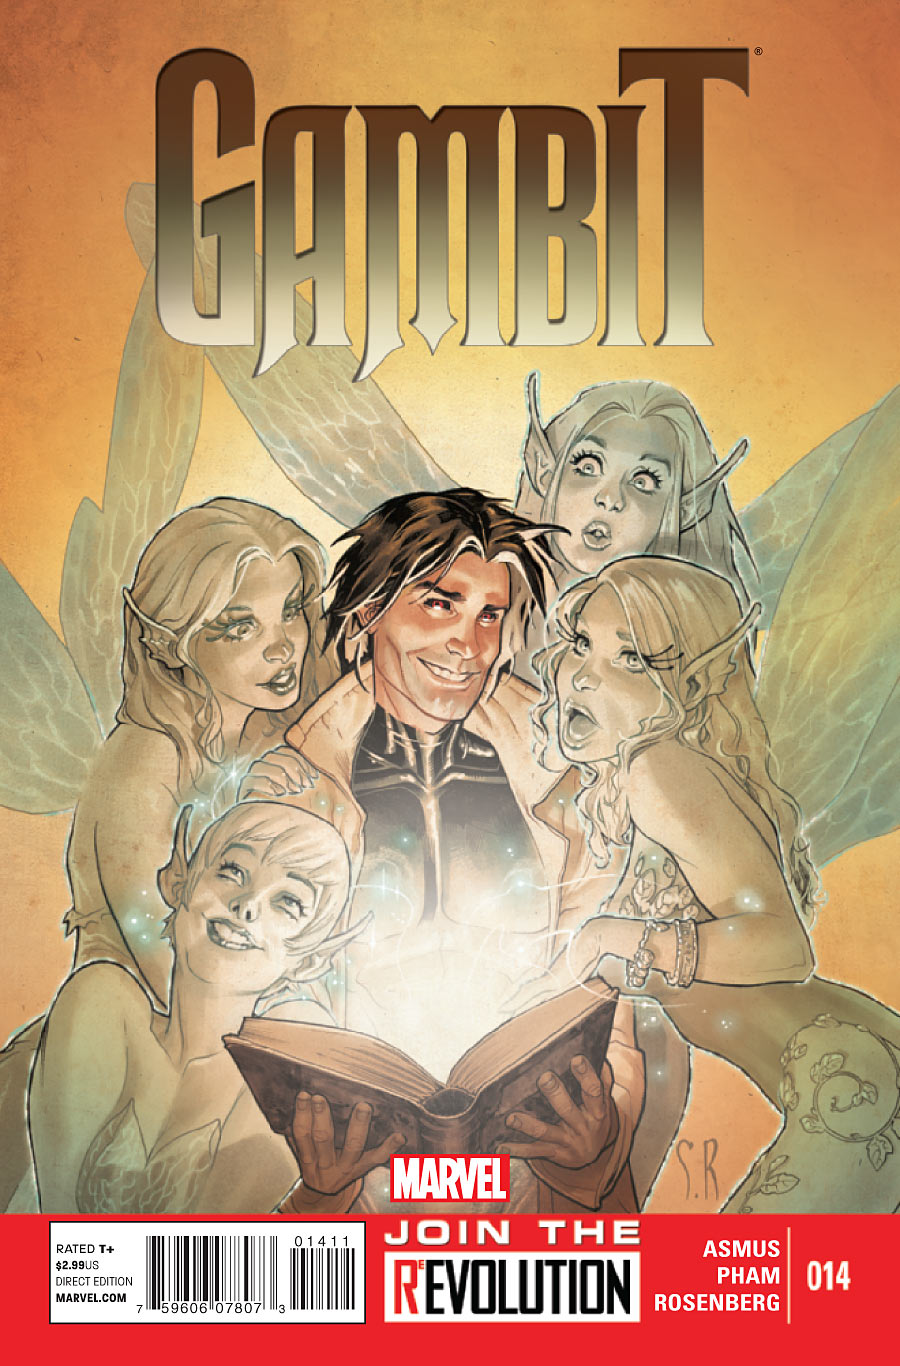 Yes, this is the cover to a Gambit comic.